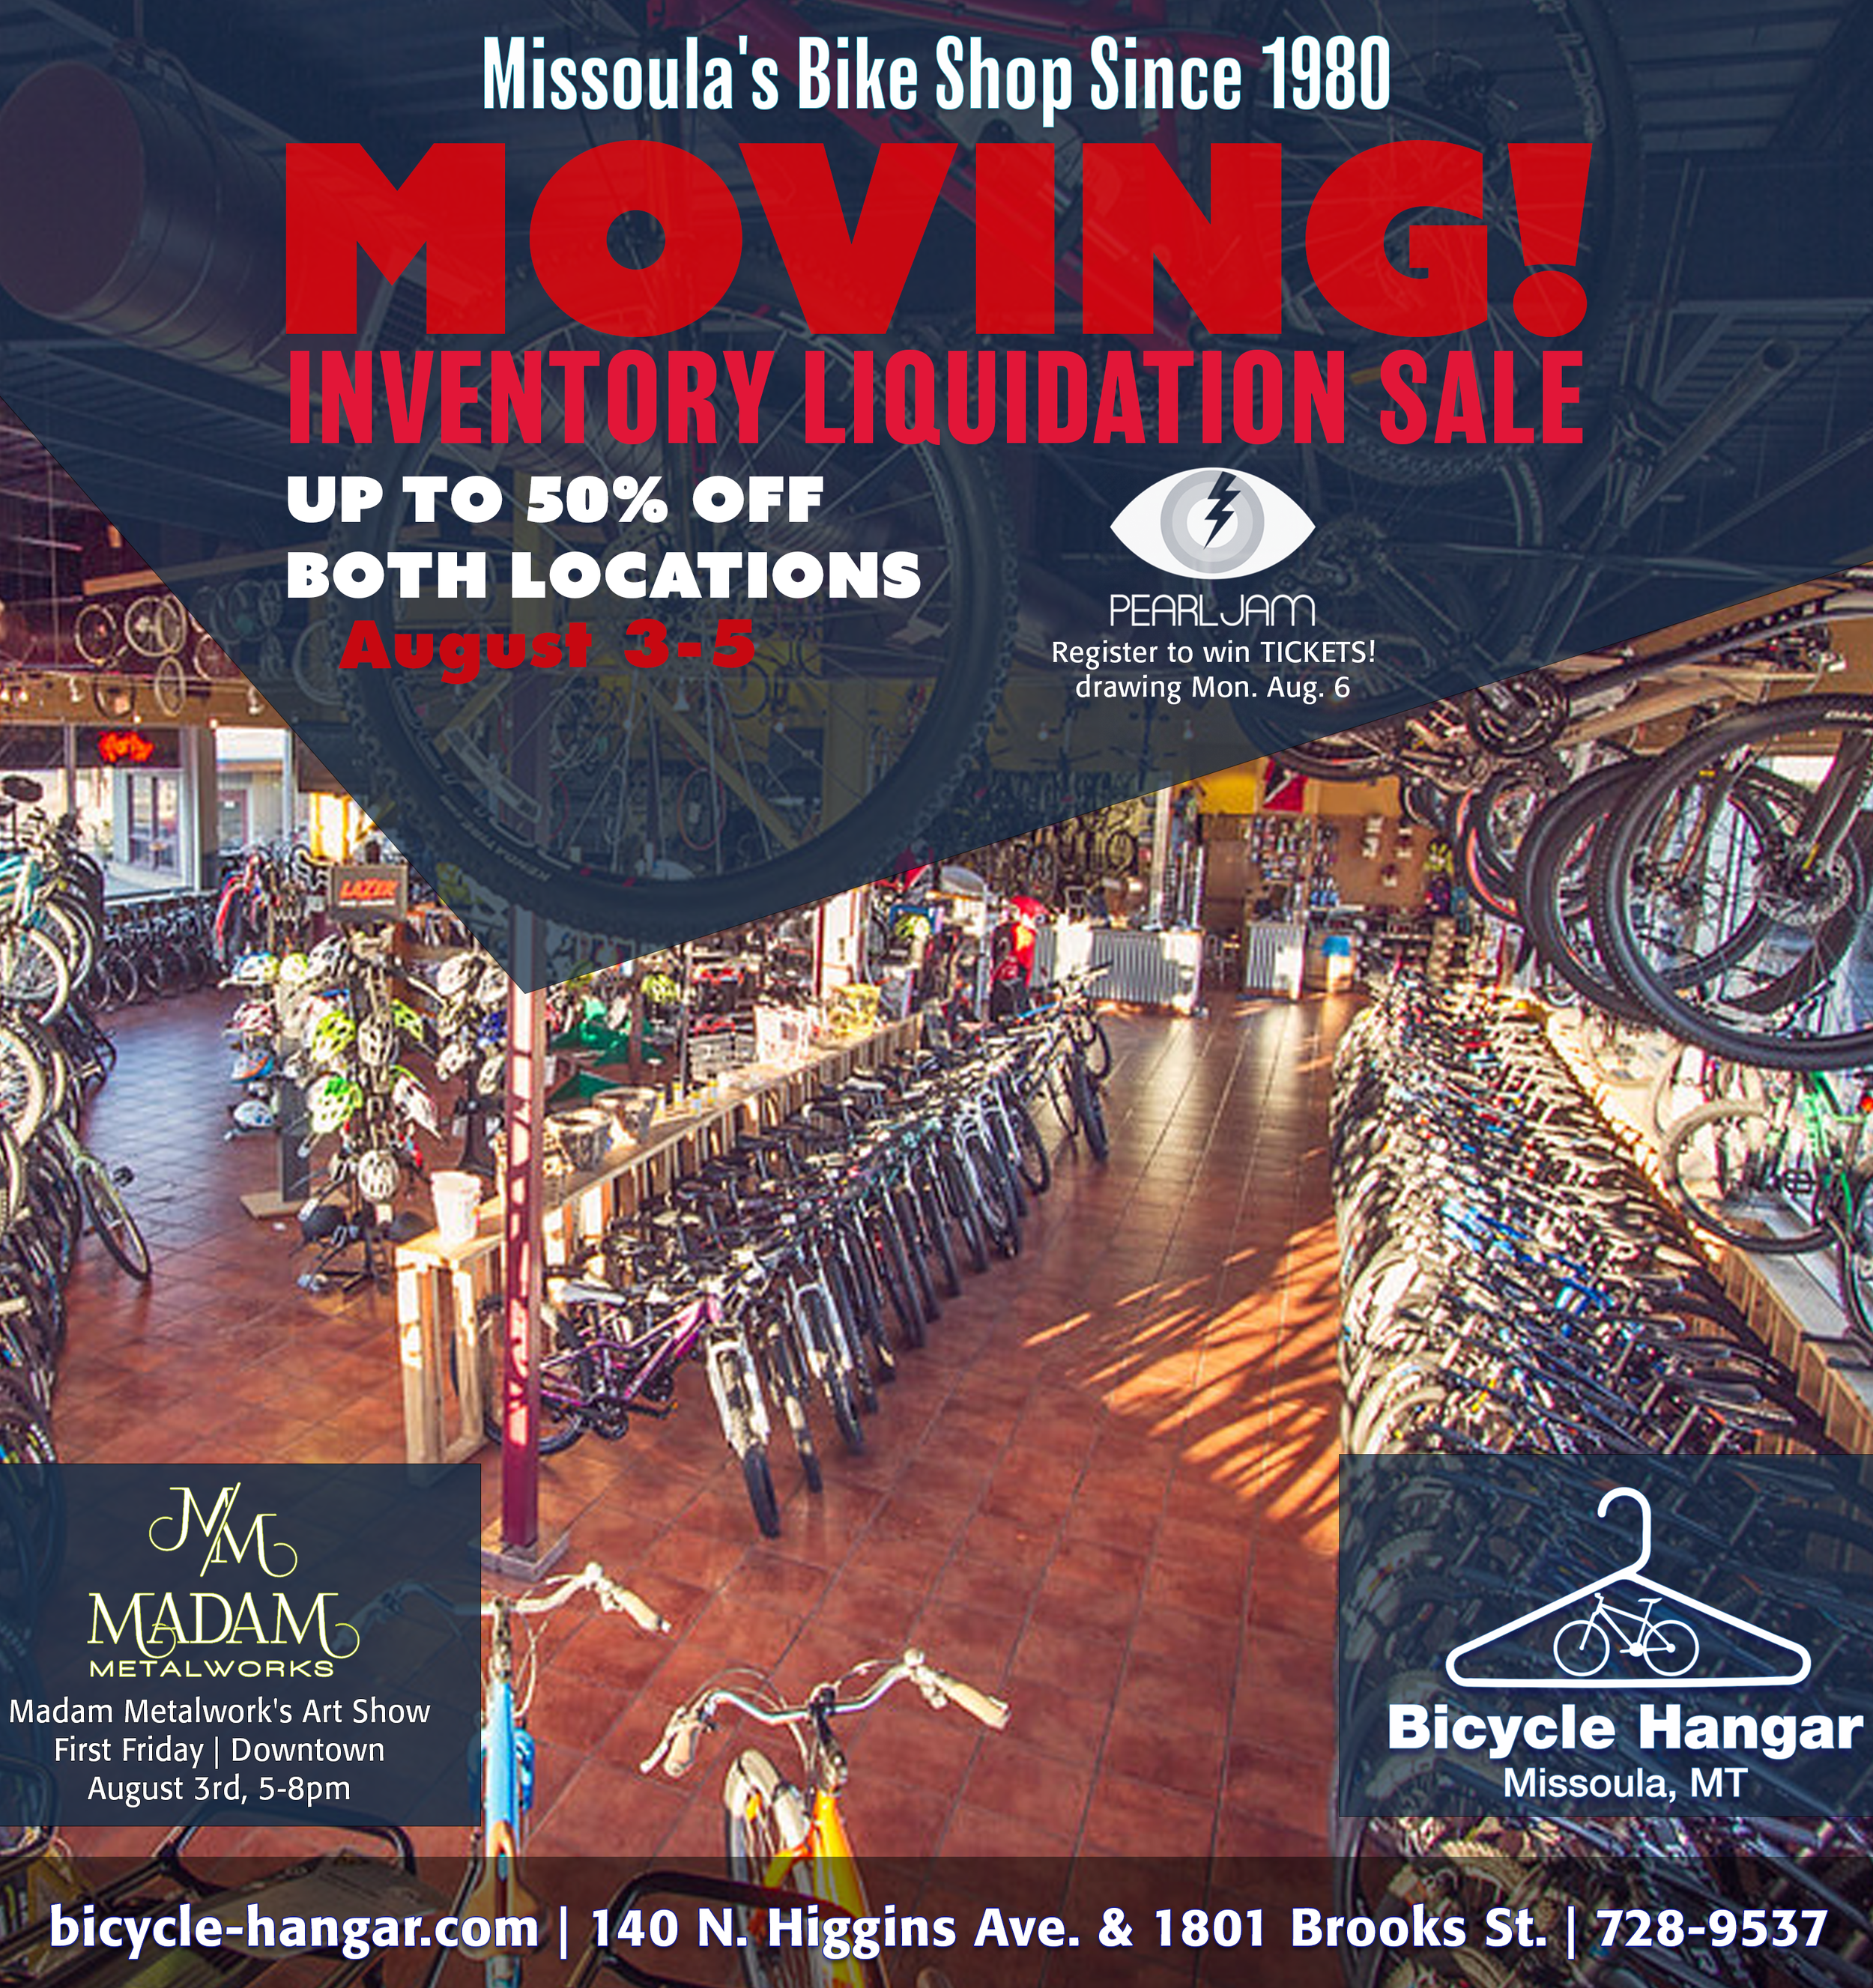 Full page ad in the  Missoulian  and Missoula Independent.  www.bicycle-hangar.com